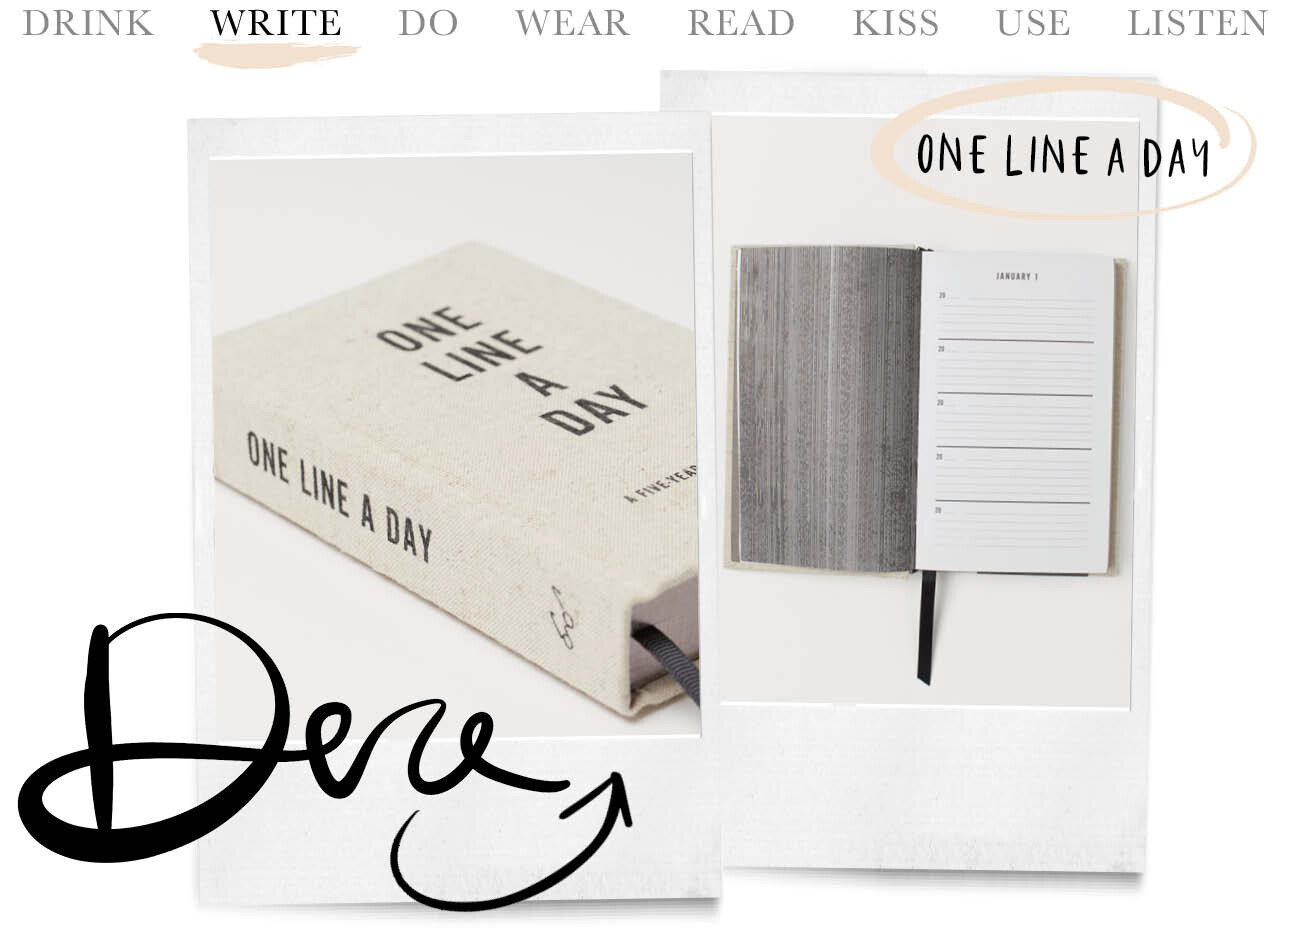 Today we write one line a day